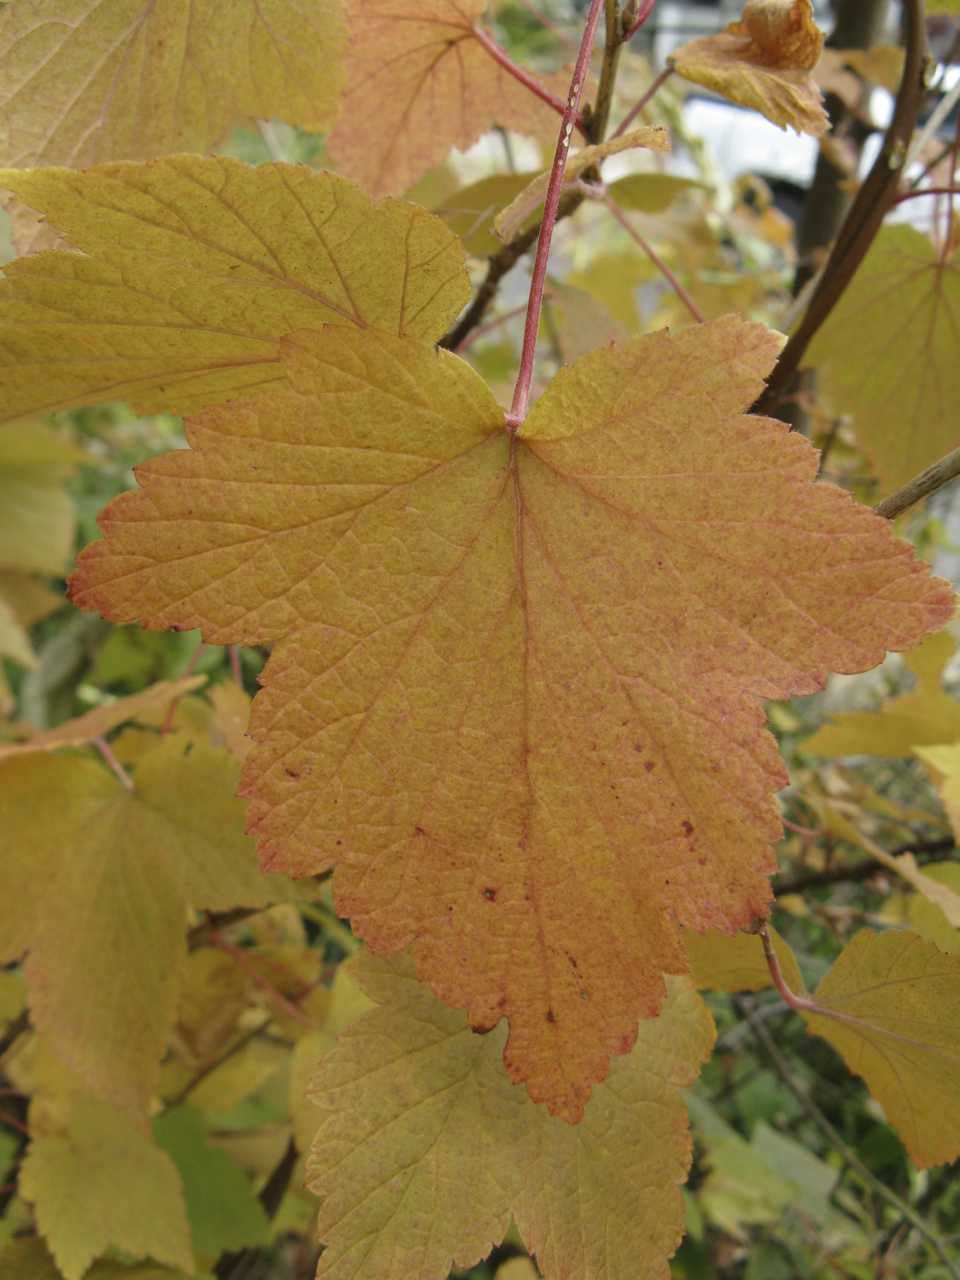 Ribes_americanum,_autumn_leaves_1.jpg